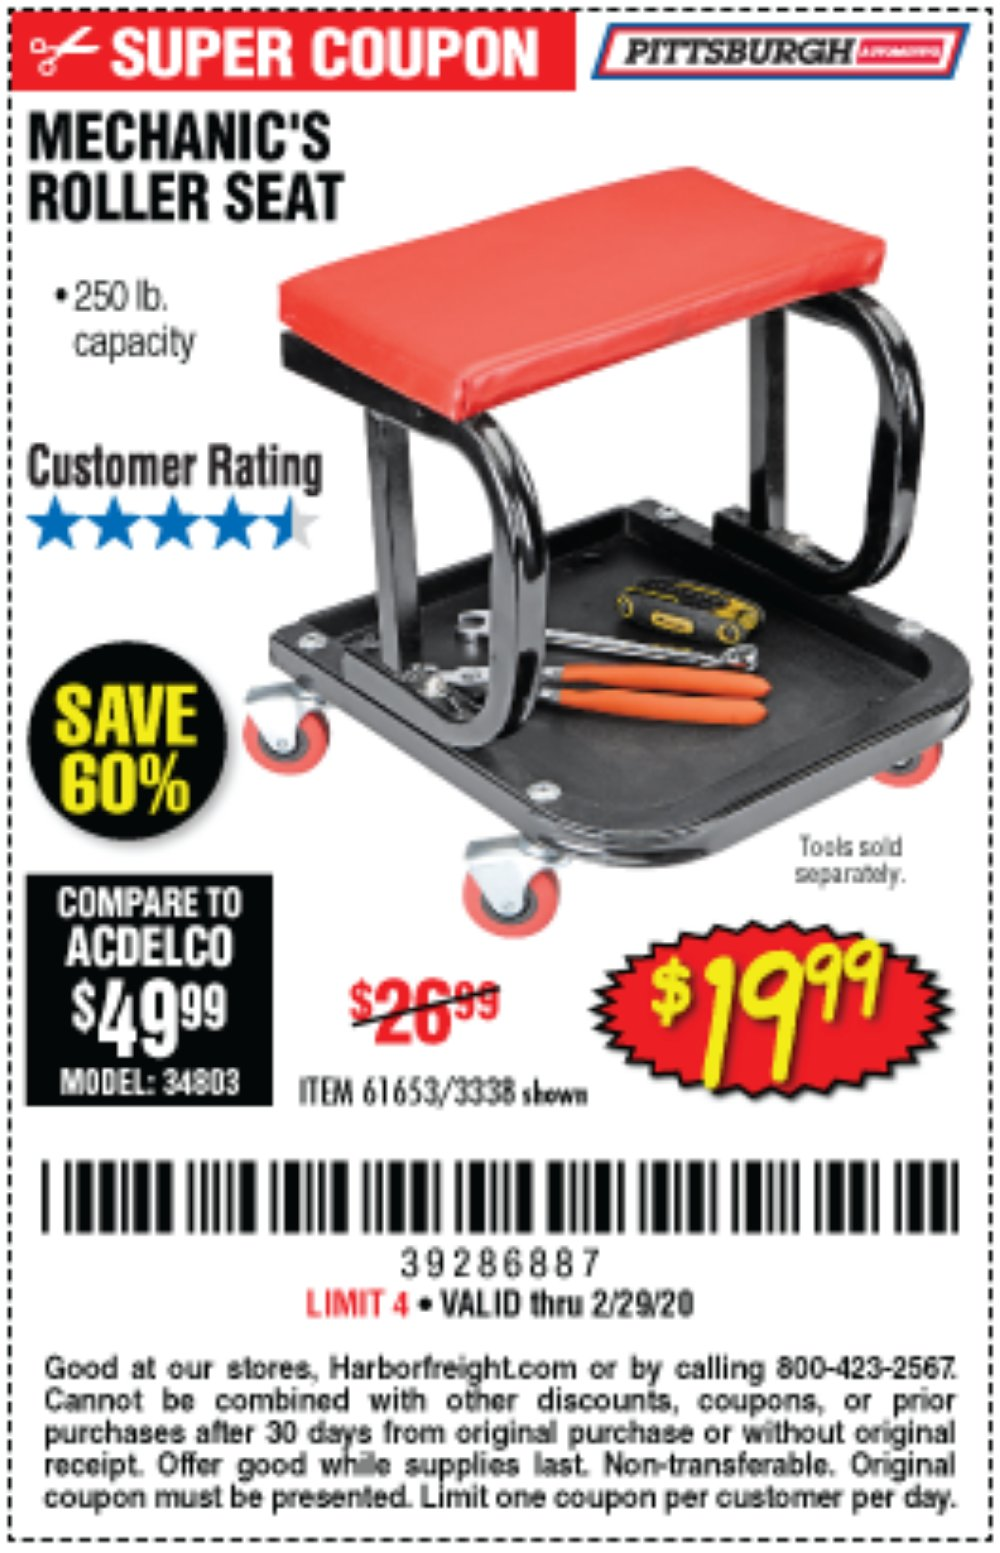 Harbor Freight Coupon, HF Coupons - Mechanic's Roller Seat